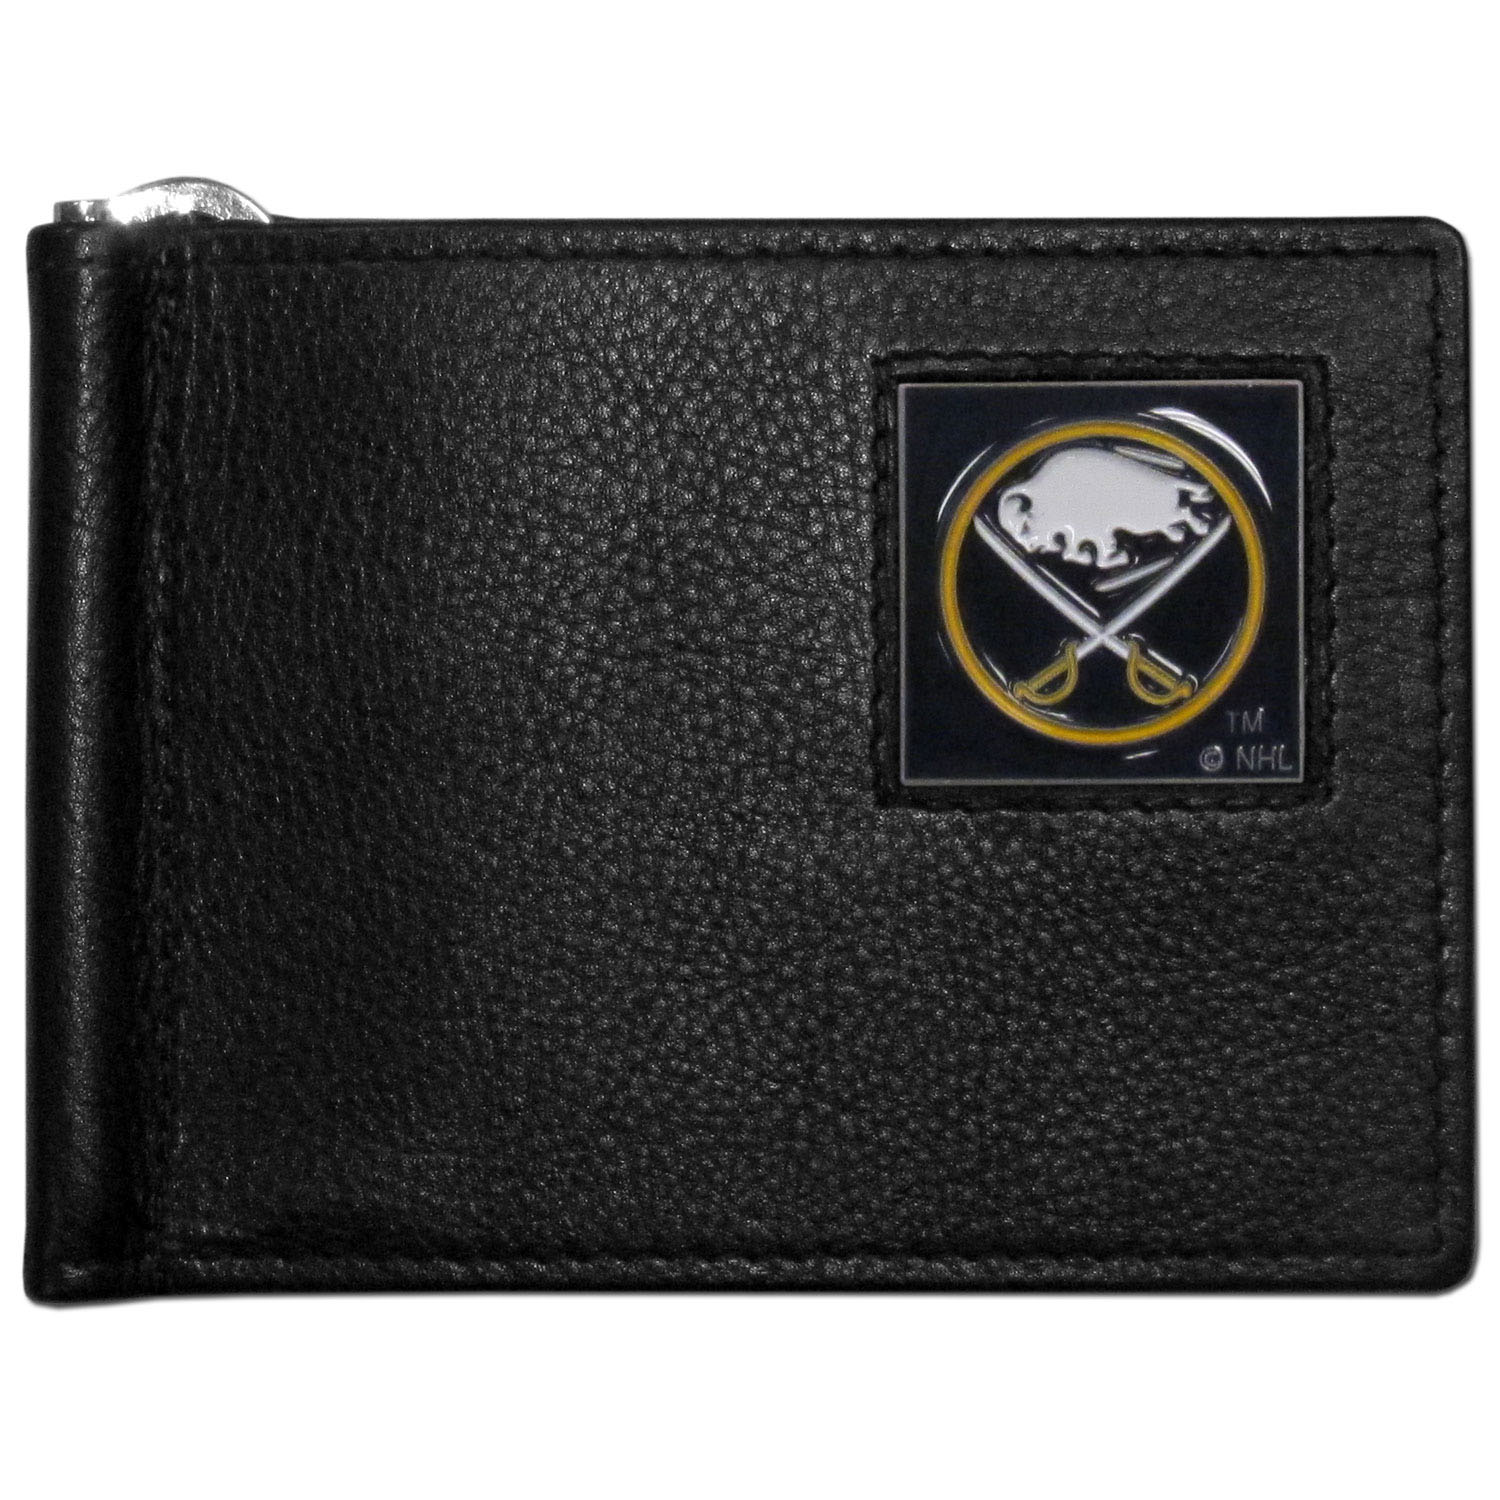 Buffalo Sabres® Leather Bill Clip Wallet - This cool new style wallet features an inner, metal bill clip that lips up for easy access. The super slim wallet holds tons of stuff with ample pockets, credit card slots & windowed ID slot. The wallet is made of genuine fine grain leather and it finished with a metal Buffalo Sabres® emblem. The wallet is shipped in gift box packaging.